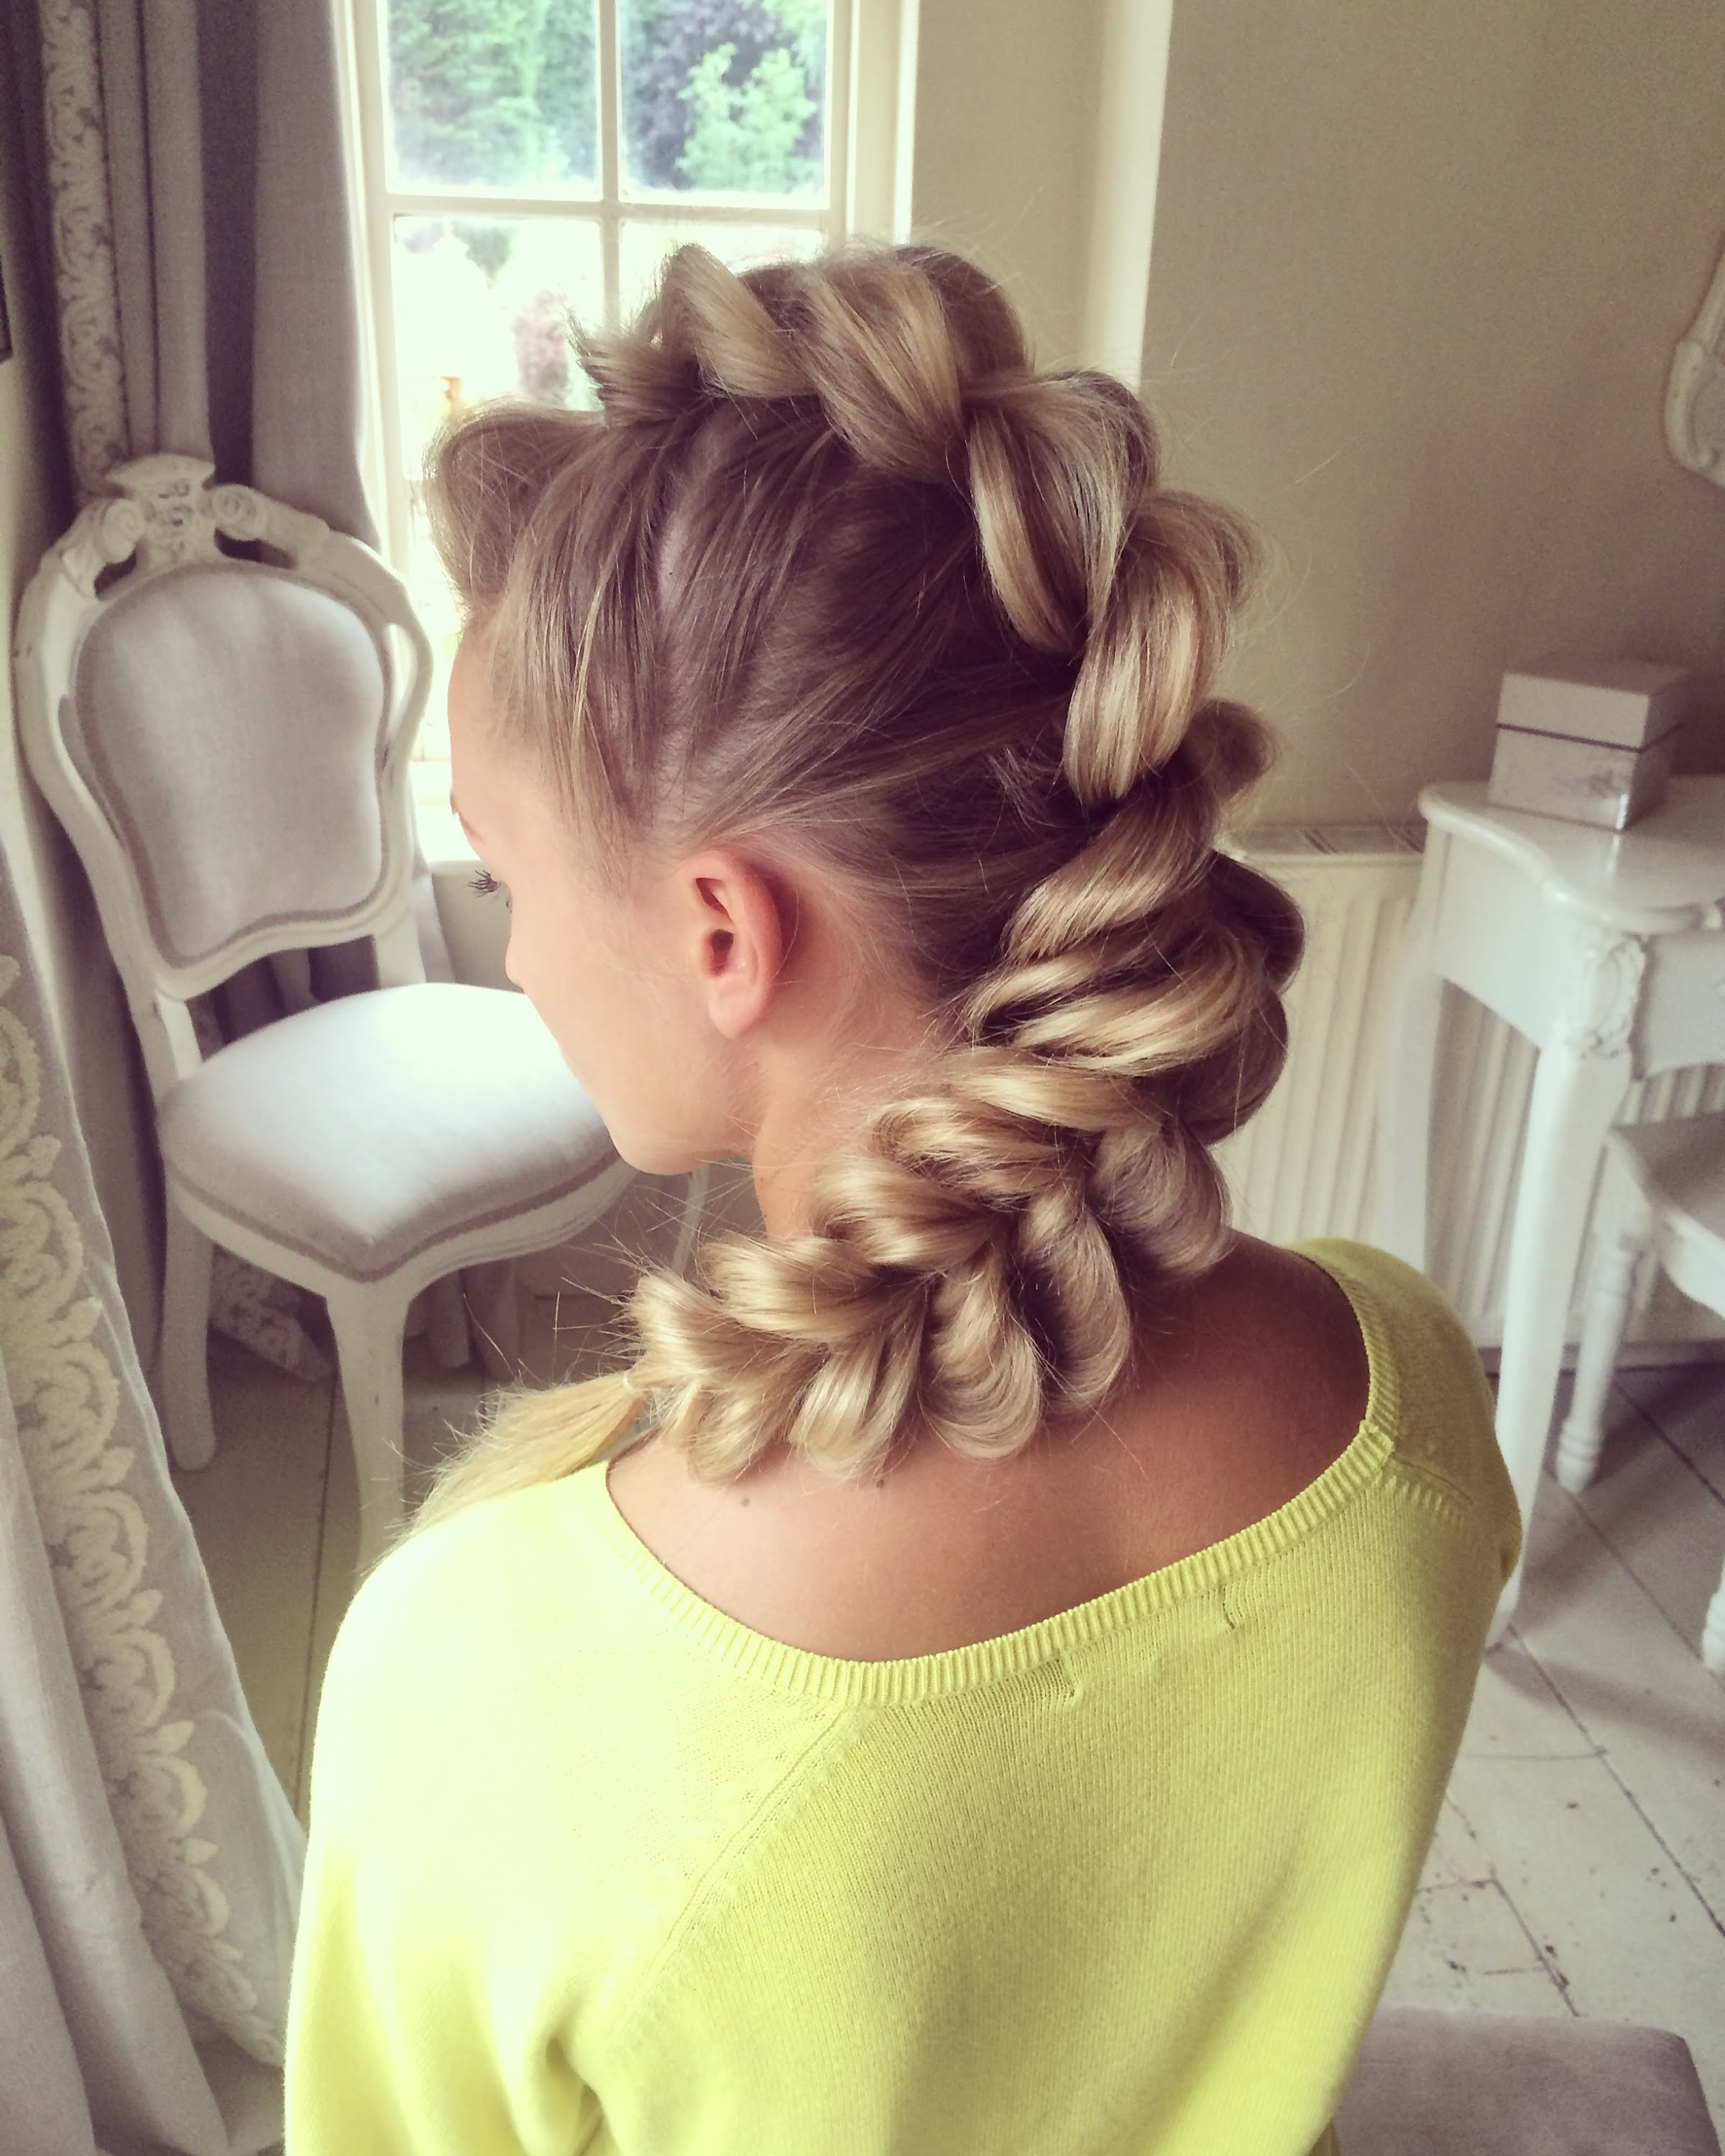 30 Braided Mohawk Styles That Turn Heads Intended For Recent Blonde Teased Mohawk Hairstyles (View 13 of 20)